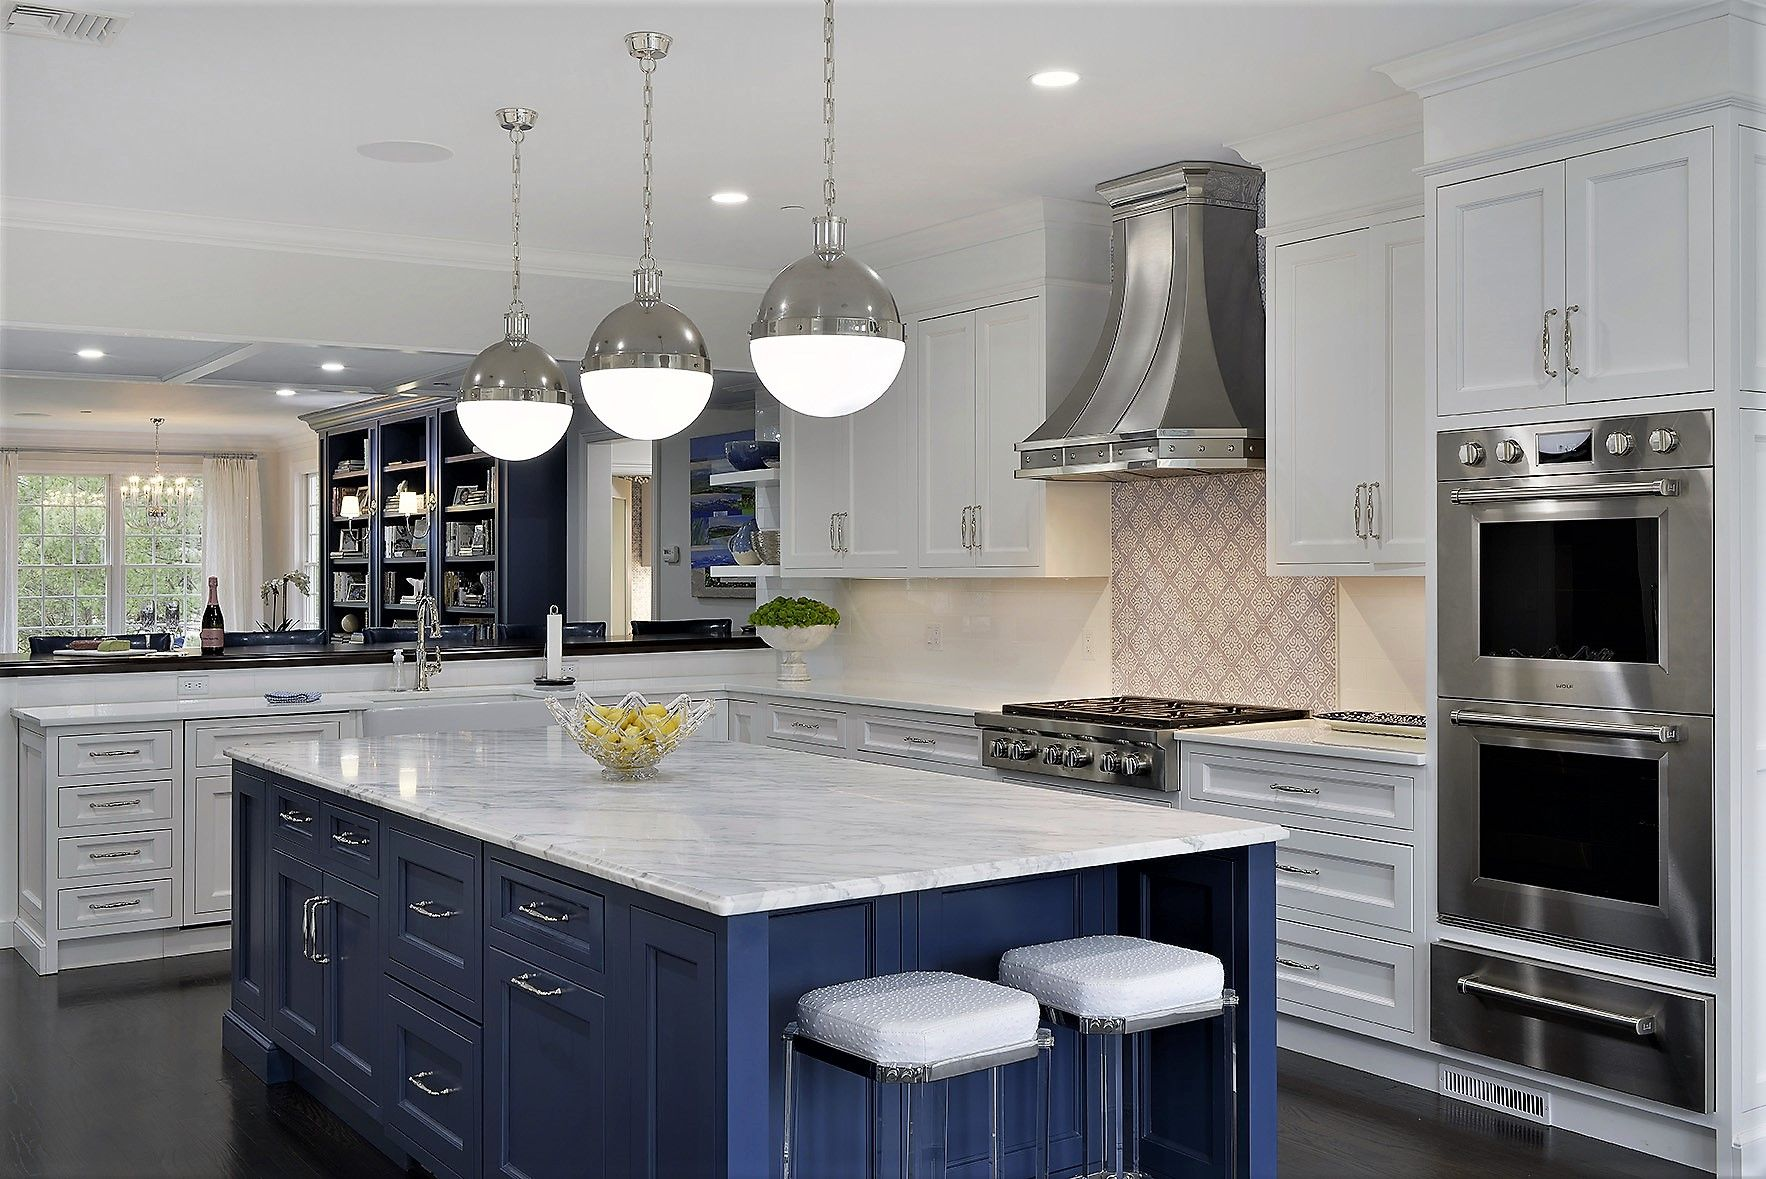 Rye Blue Kitchen Designed By Scott Weinlein Of Majestic Kitchens Bath Cabinets Elmwood By Cabico Countert Kitchen Plans Kitchens And Bath Kitchen Design